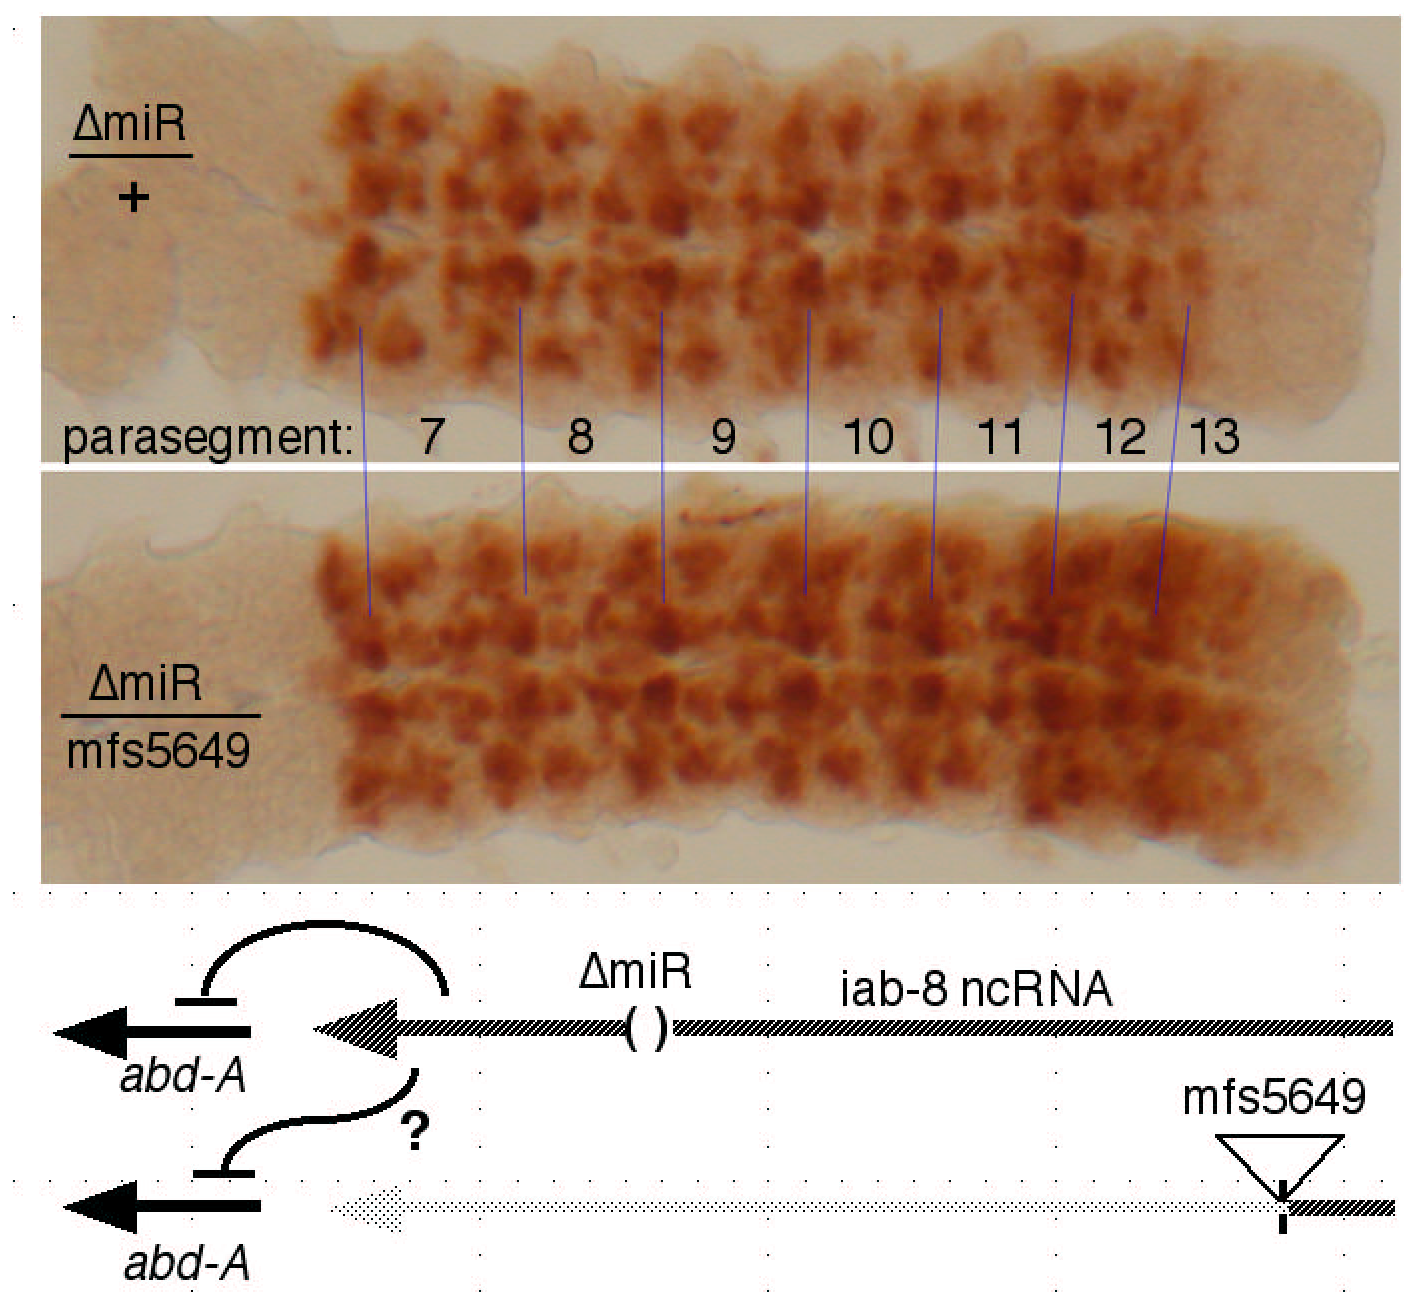 Test for <i>trans</i> repression by the iab-8 ncRNA.